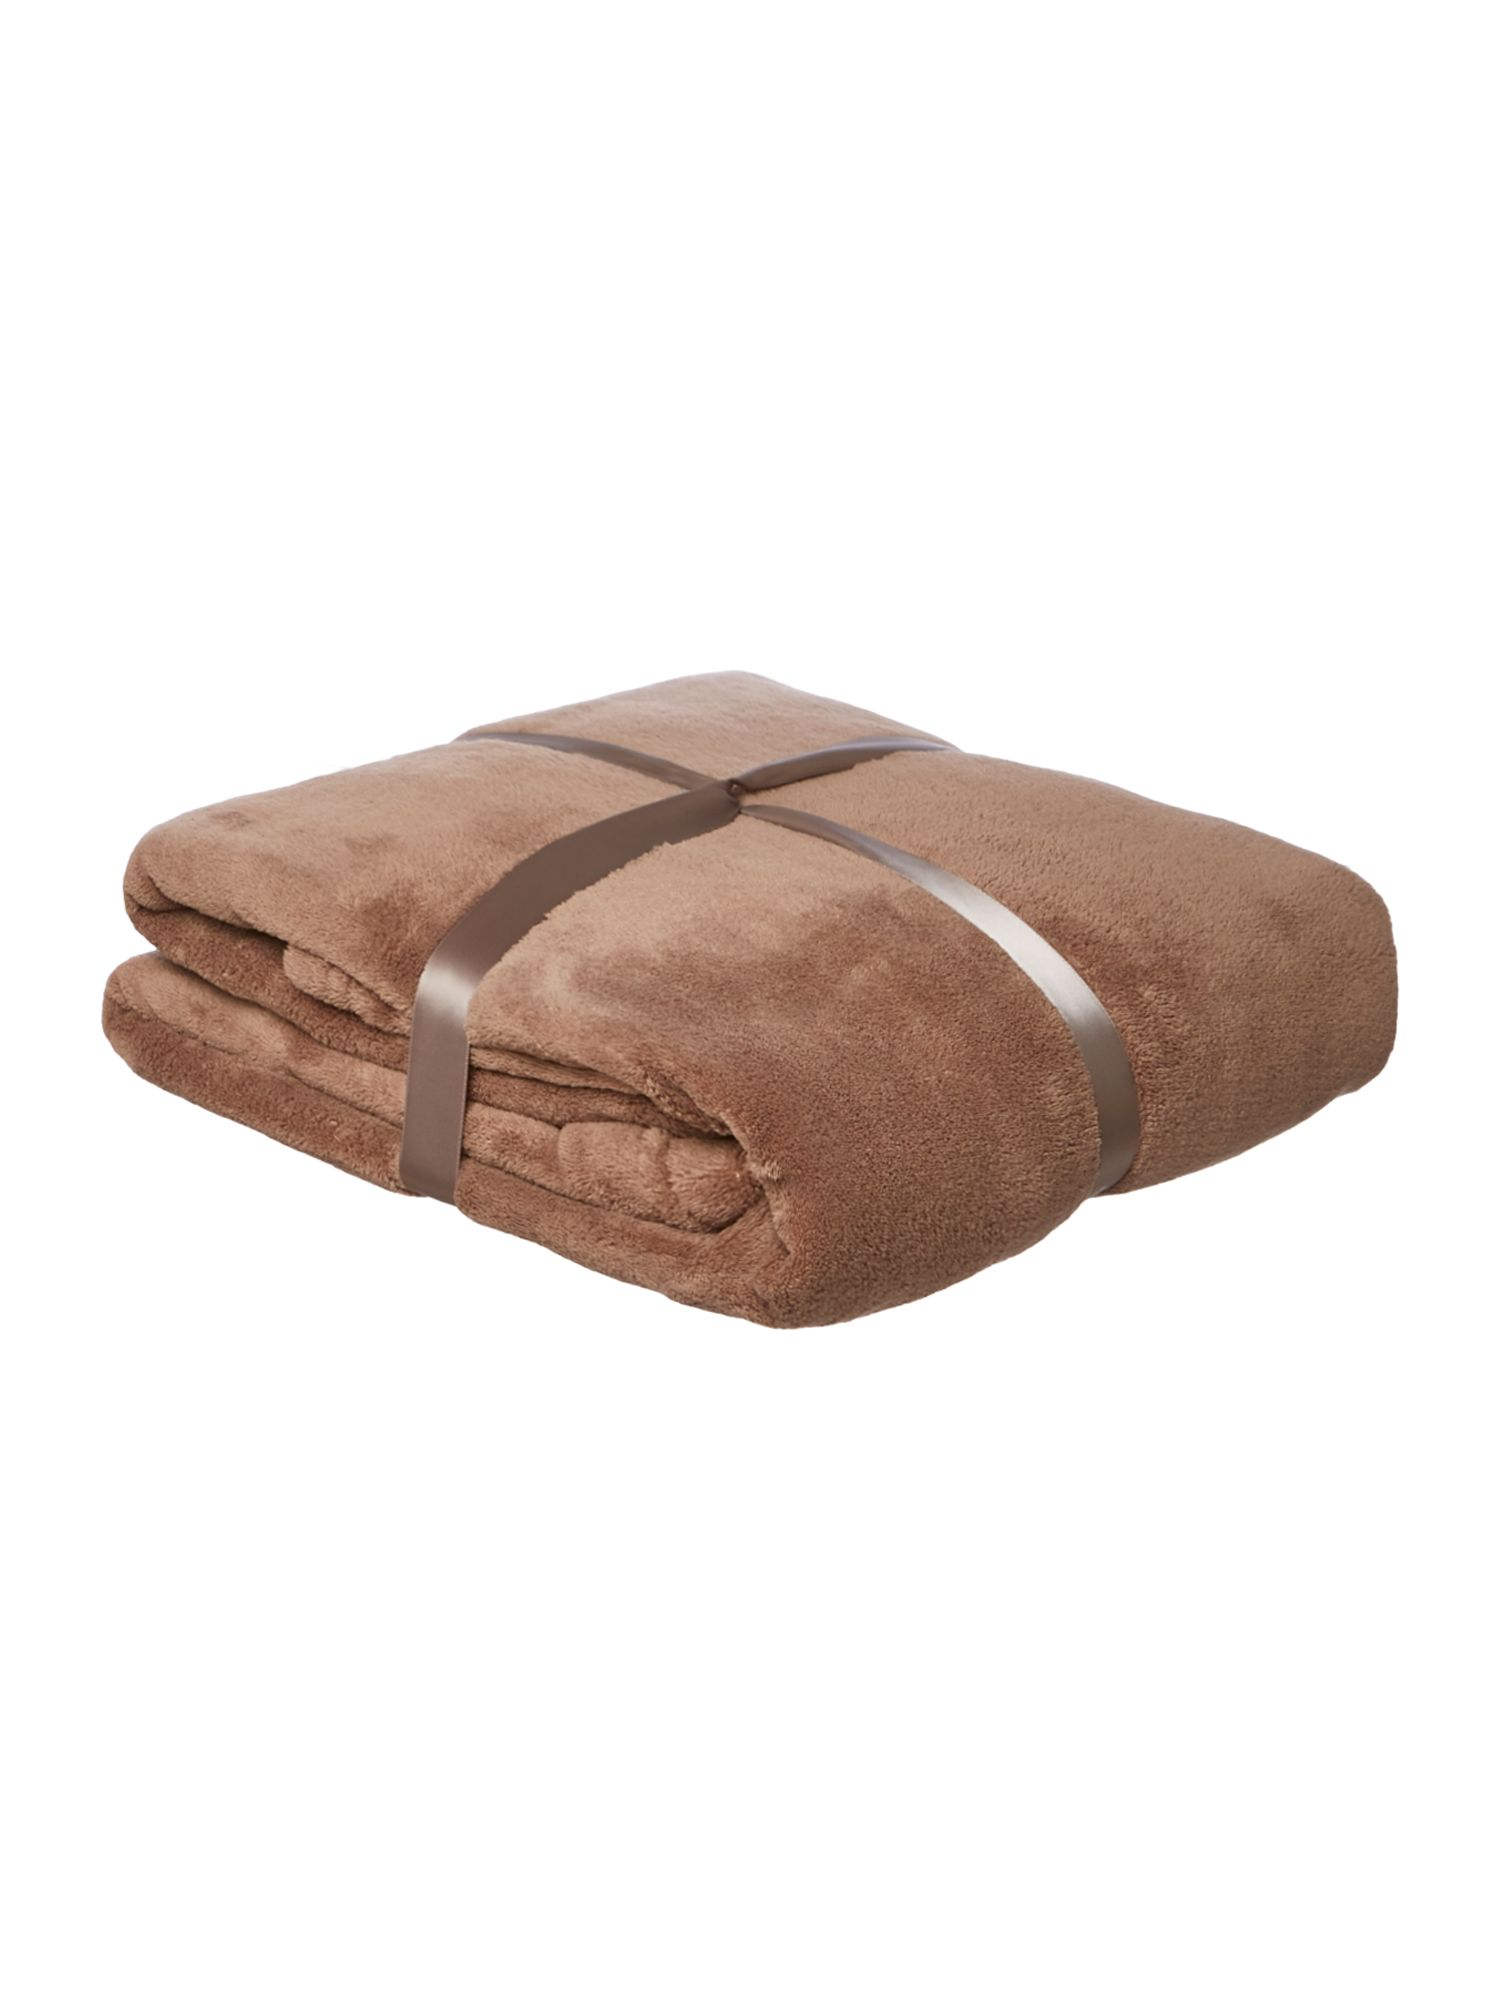 Beige fleece blanket